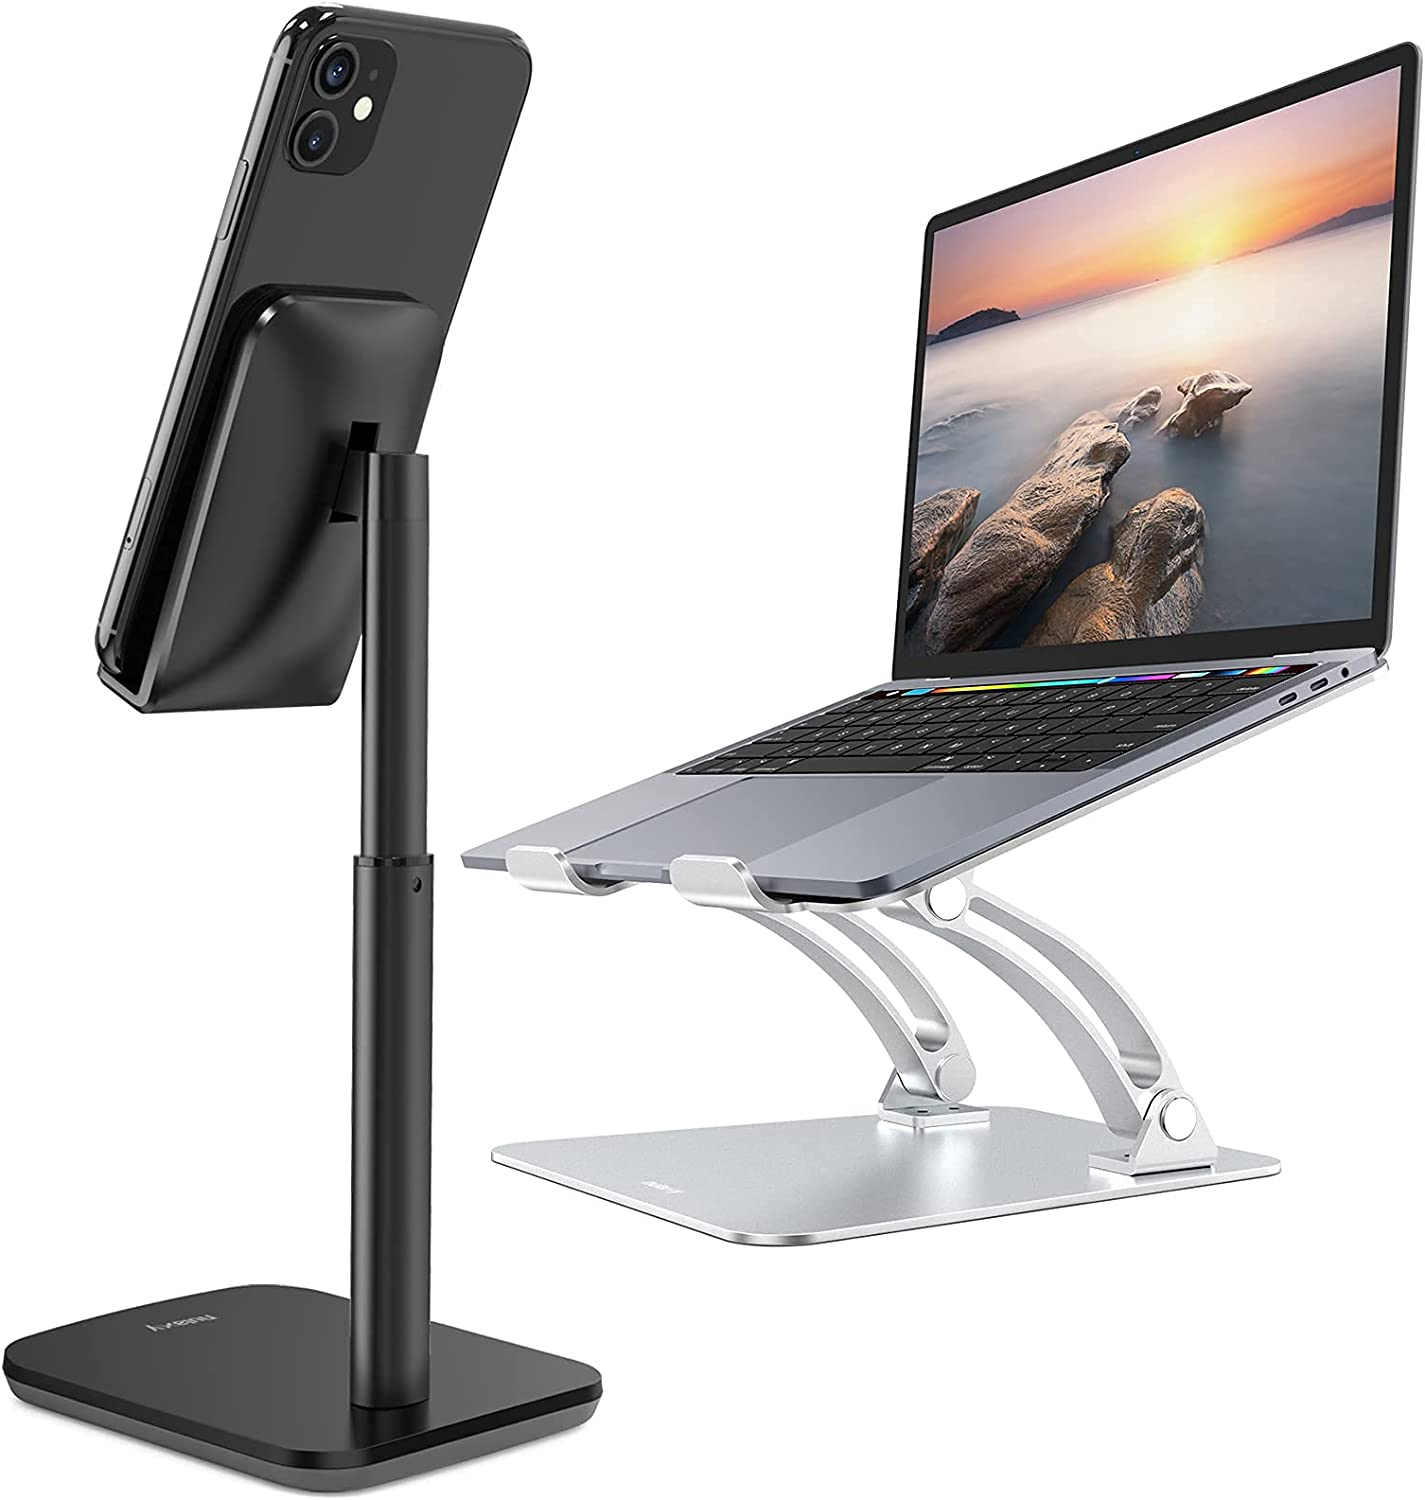 Nulaxty C1 Laptop Stand & Nulaxy T1 Phone Stand, iPhone Stand for Desk Compatible with iPhone12 Mini 11 Pro Xs Xs Max Xr X 8 7 6 6s Plus, All Smartphones (4-8 inches) - Black